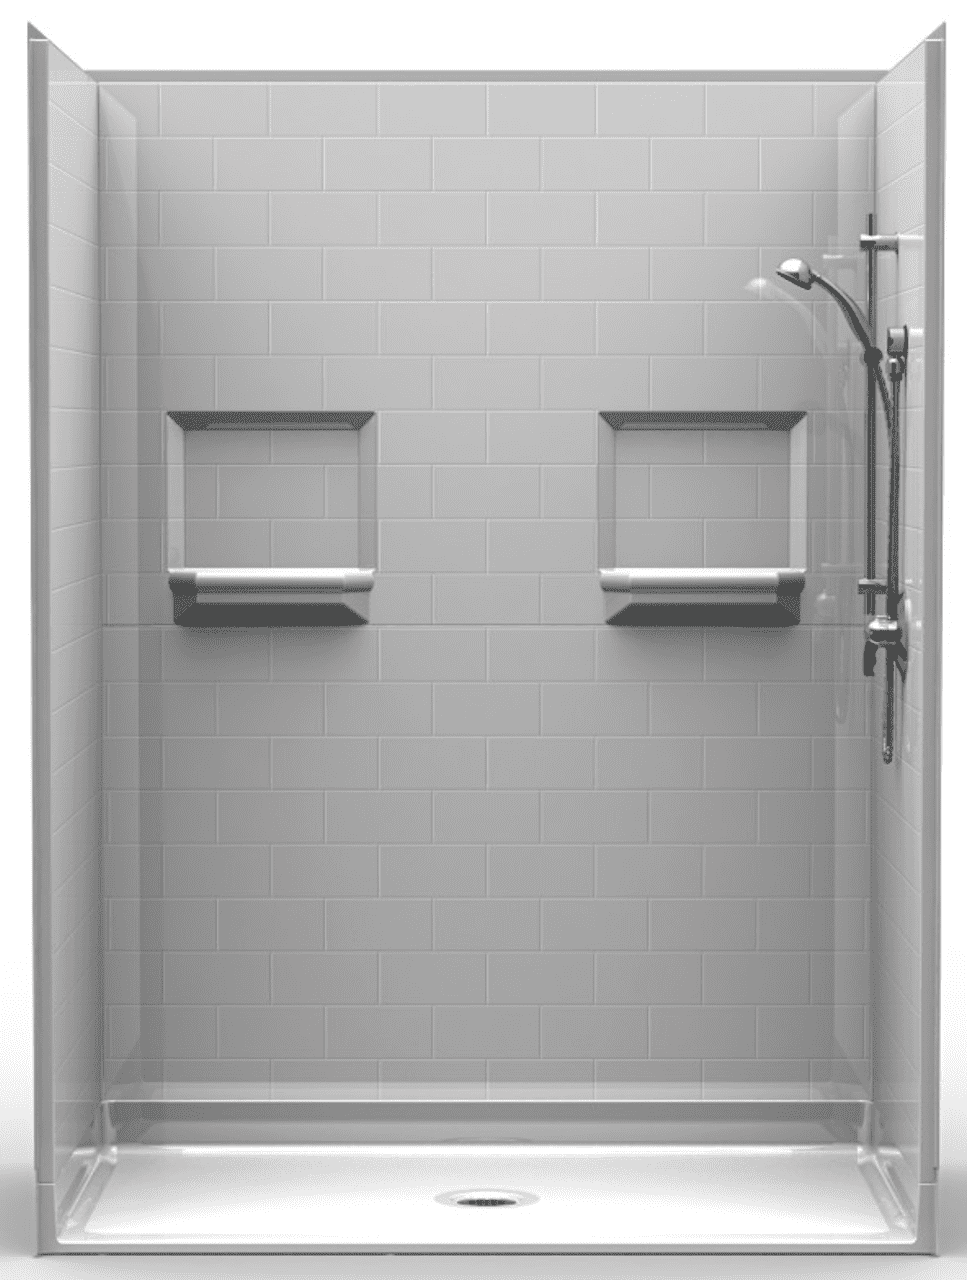 60 X 34 Shower Stall has Curbless Threshold | USA Made